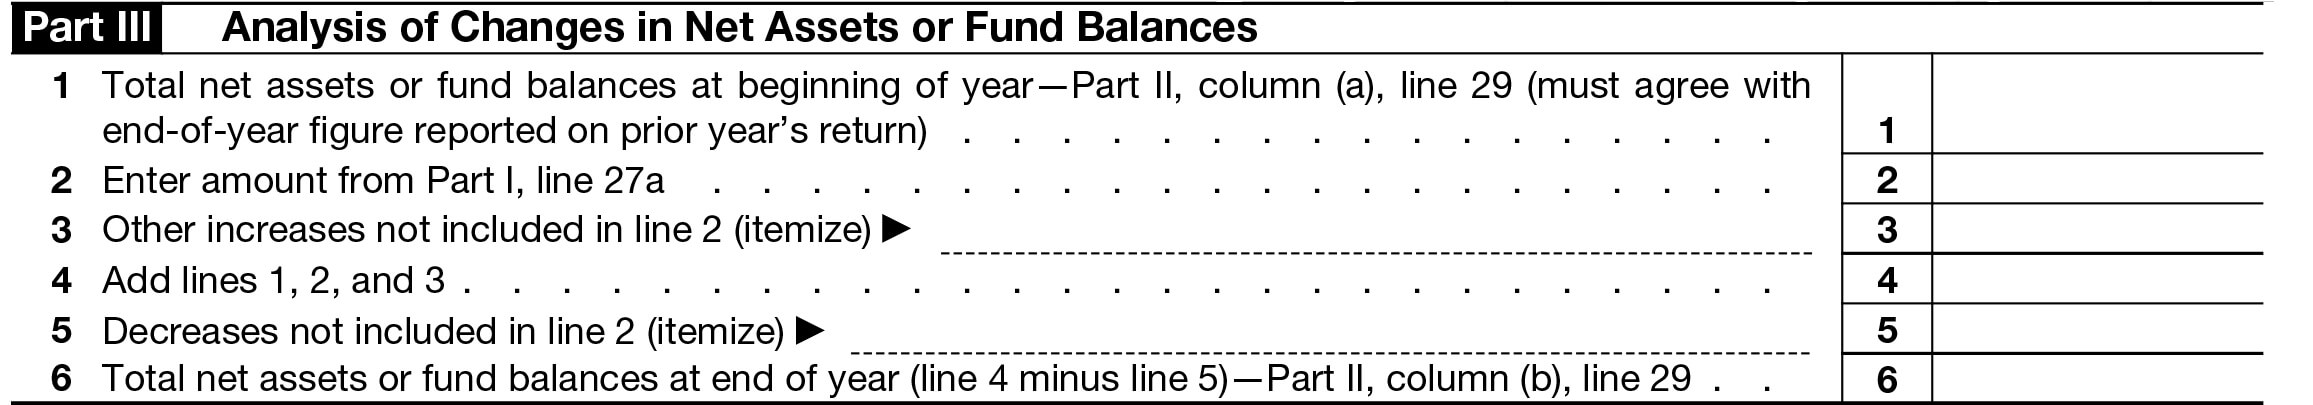 Part III - Analysis of Changes in Net Assets or Fund Balances